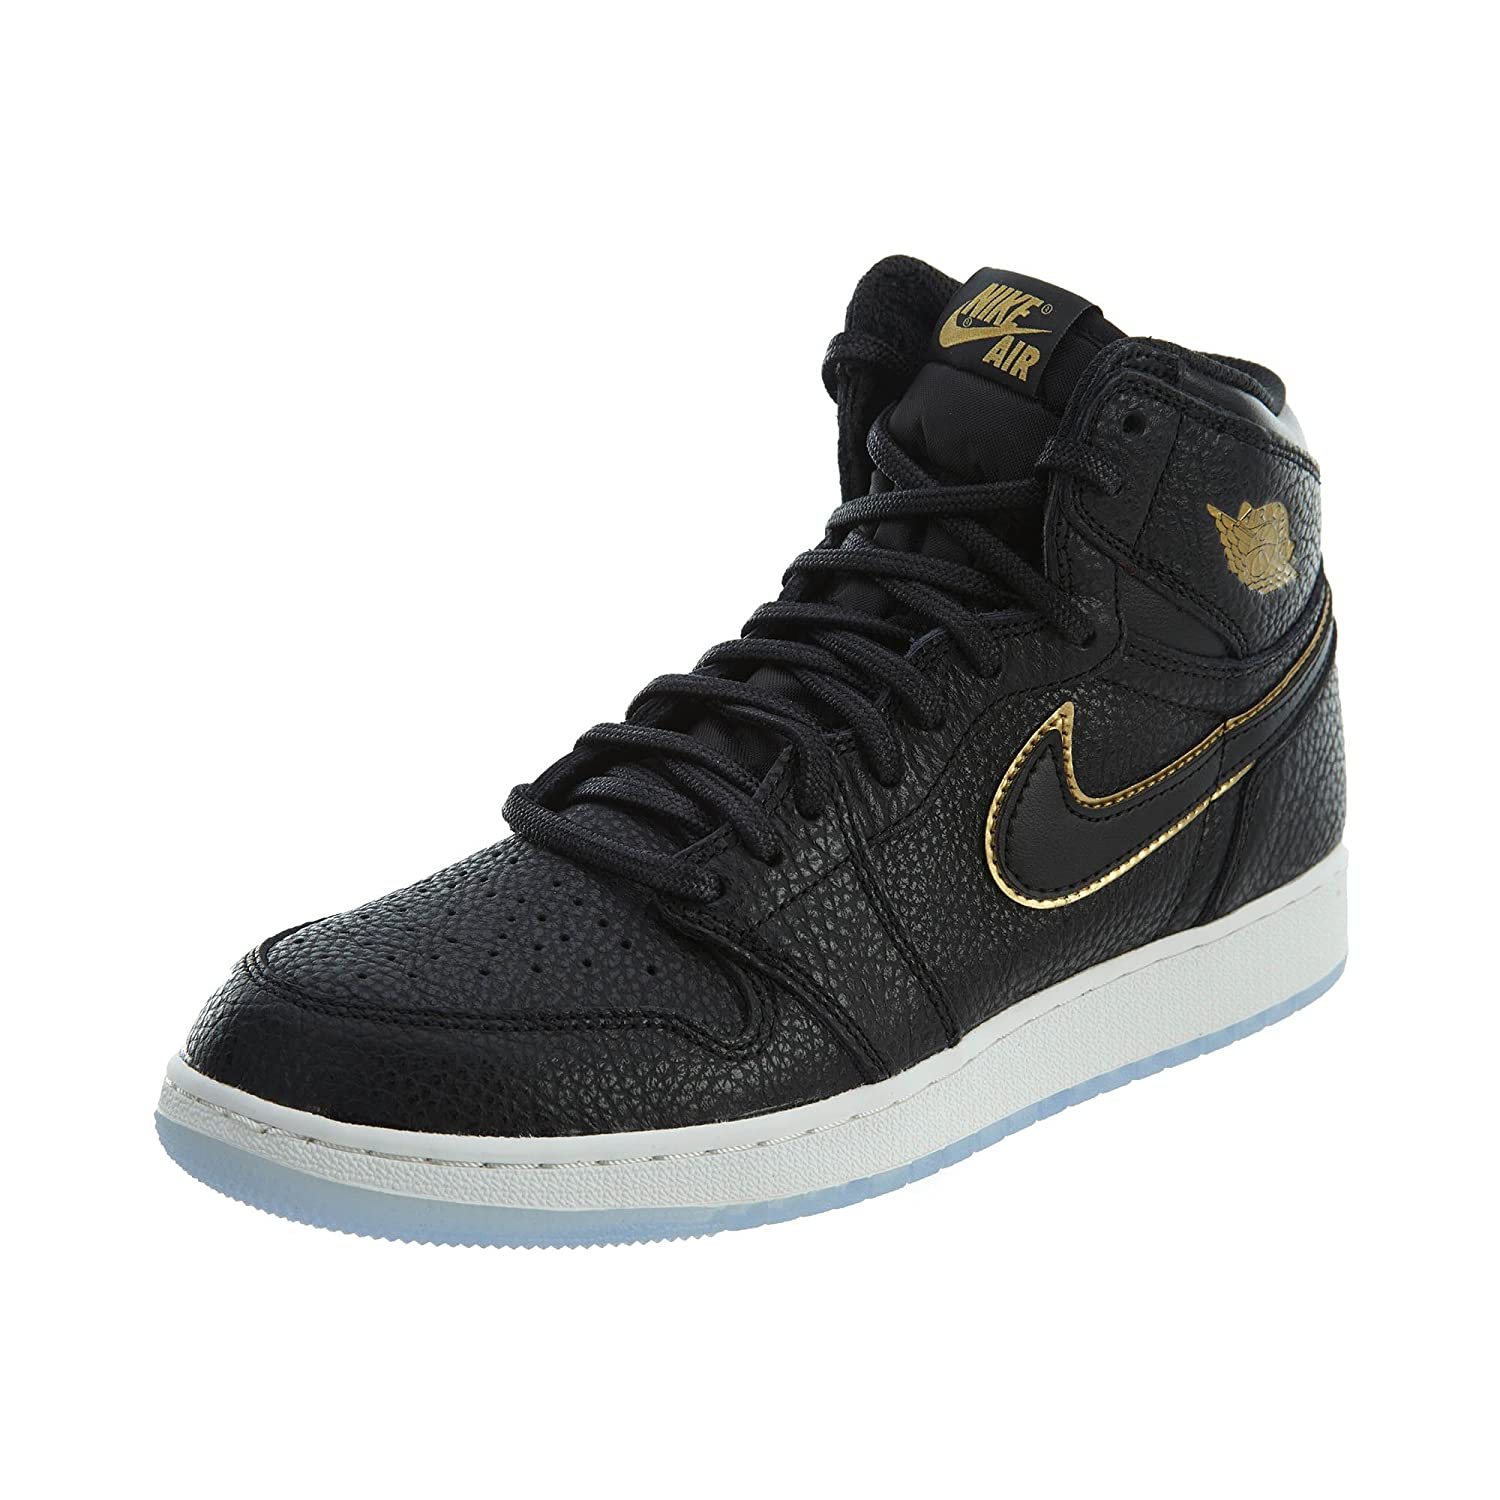 4aca5737cf4 Amazon.com | Nike Boys Air Jordan 1 Retro High OG BG Black/Metallic Gold |  Sneakers